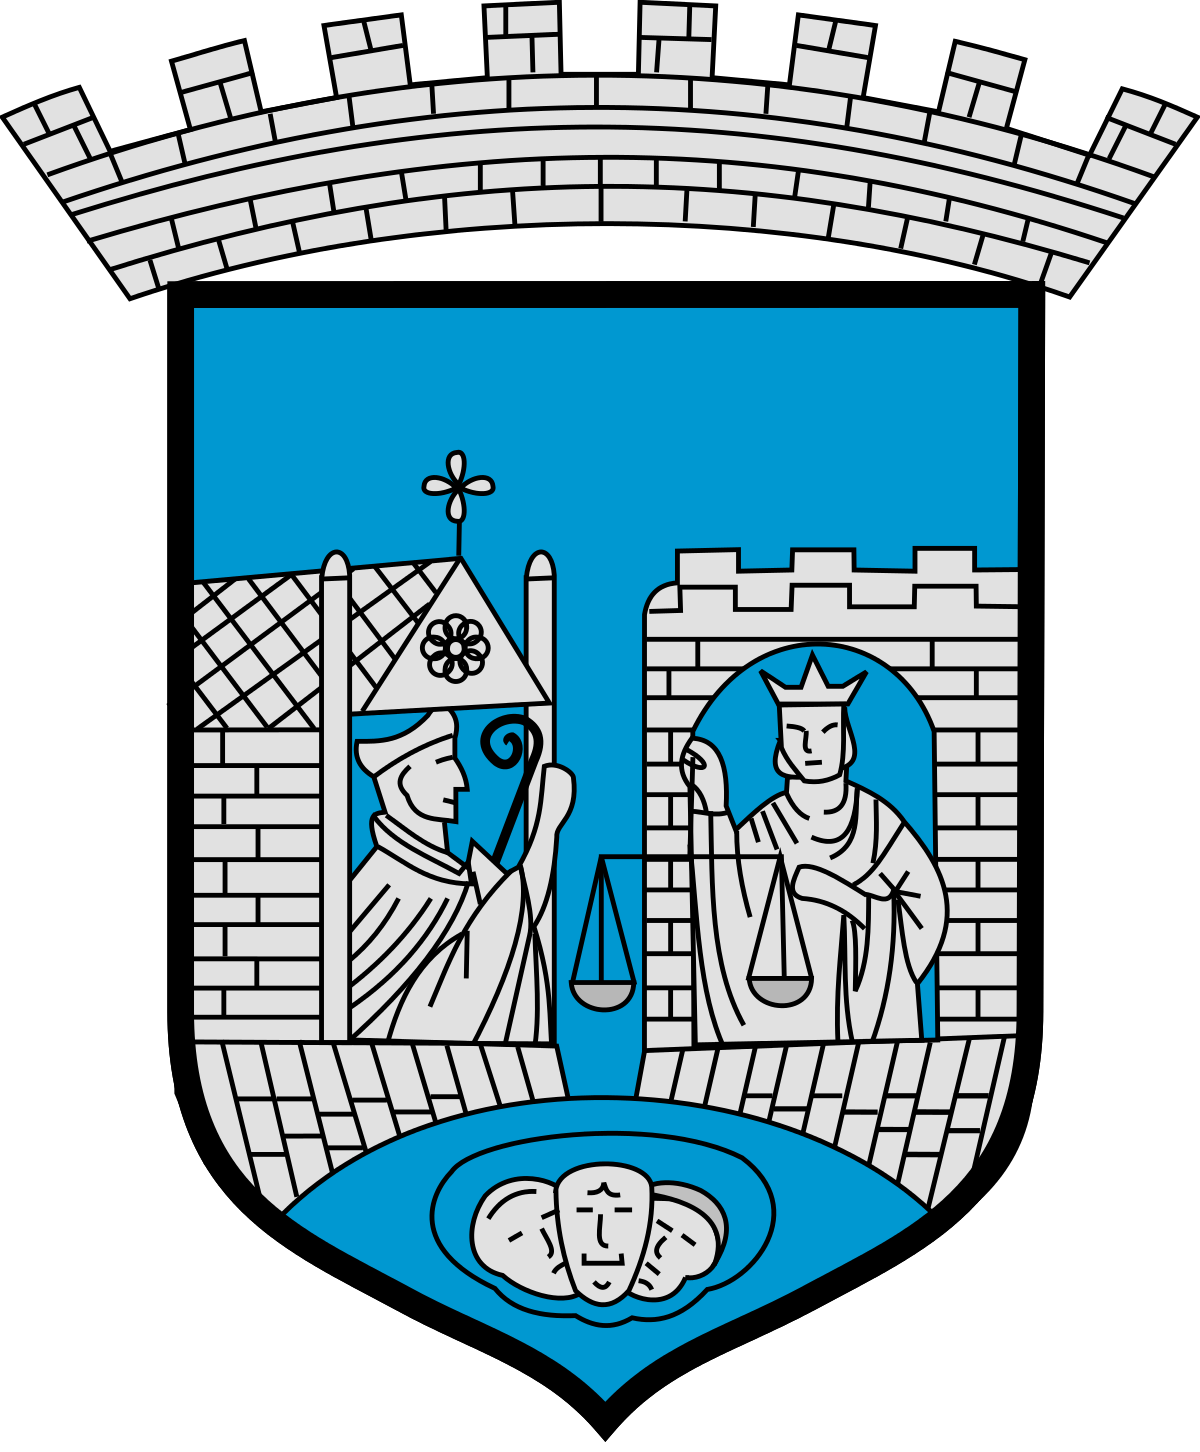 Coat of arms of Trondheim.